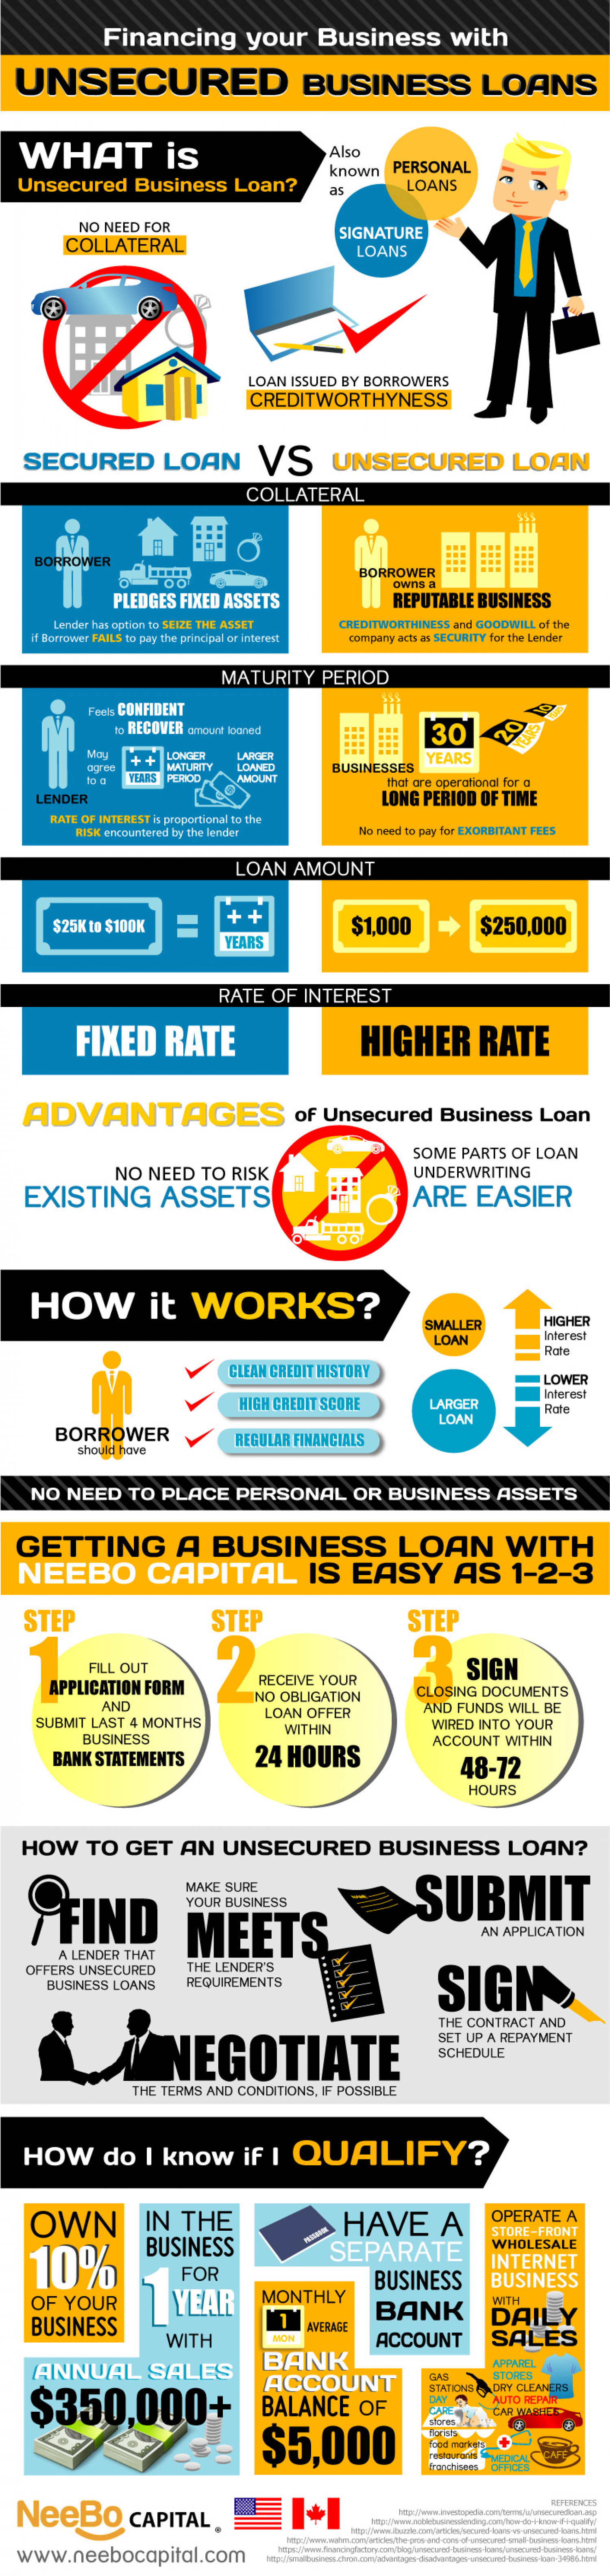 Financing your Business with Unsecured Business Loans Infographic